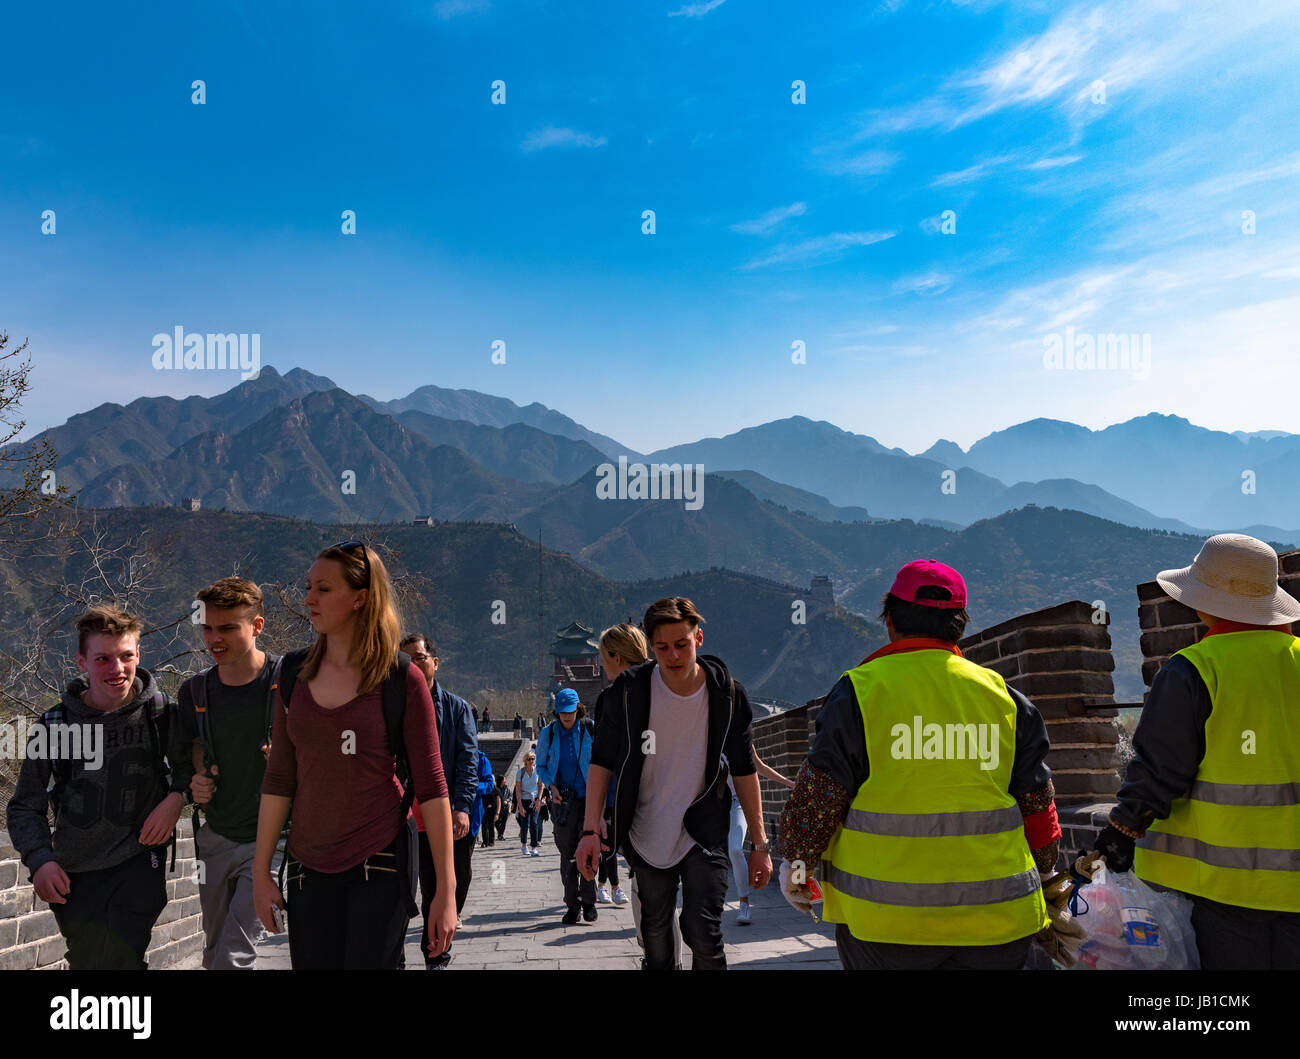 Tourists make thier way up along the Great Wall of China with mountains in the background - Stock Image